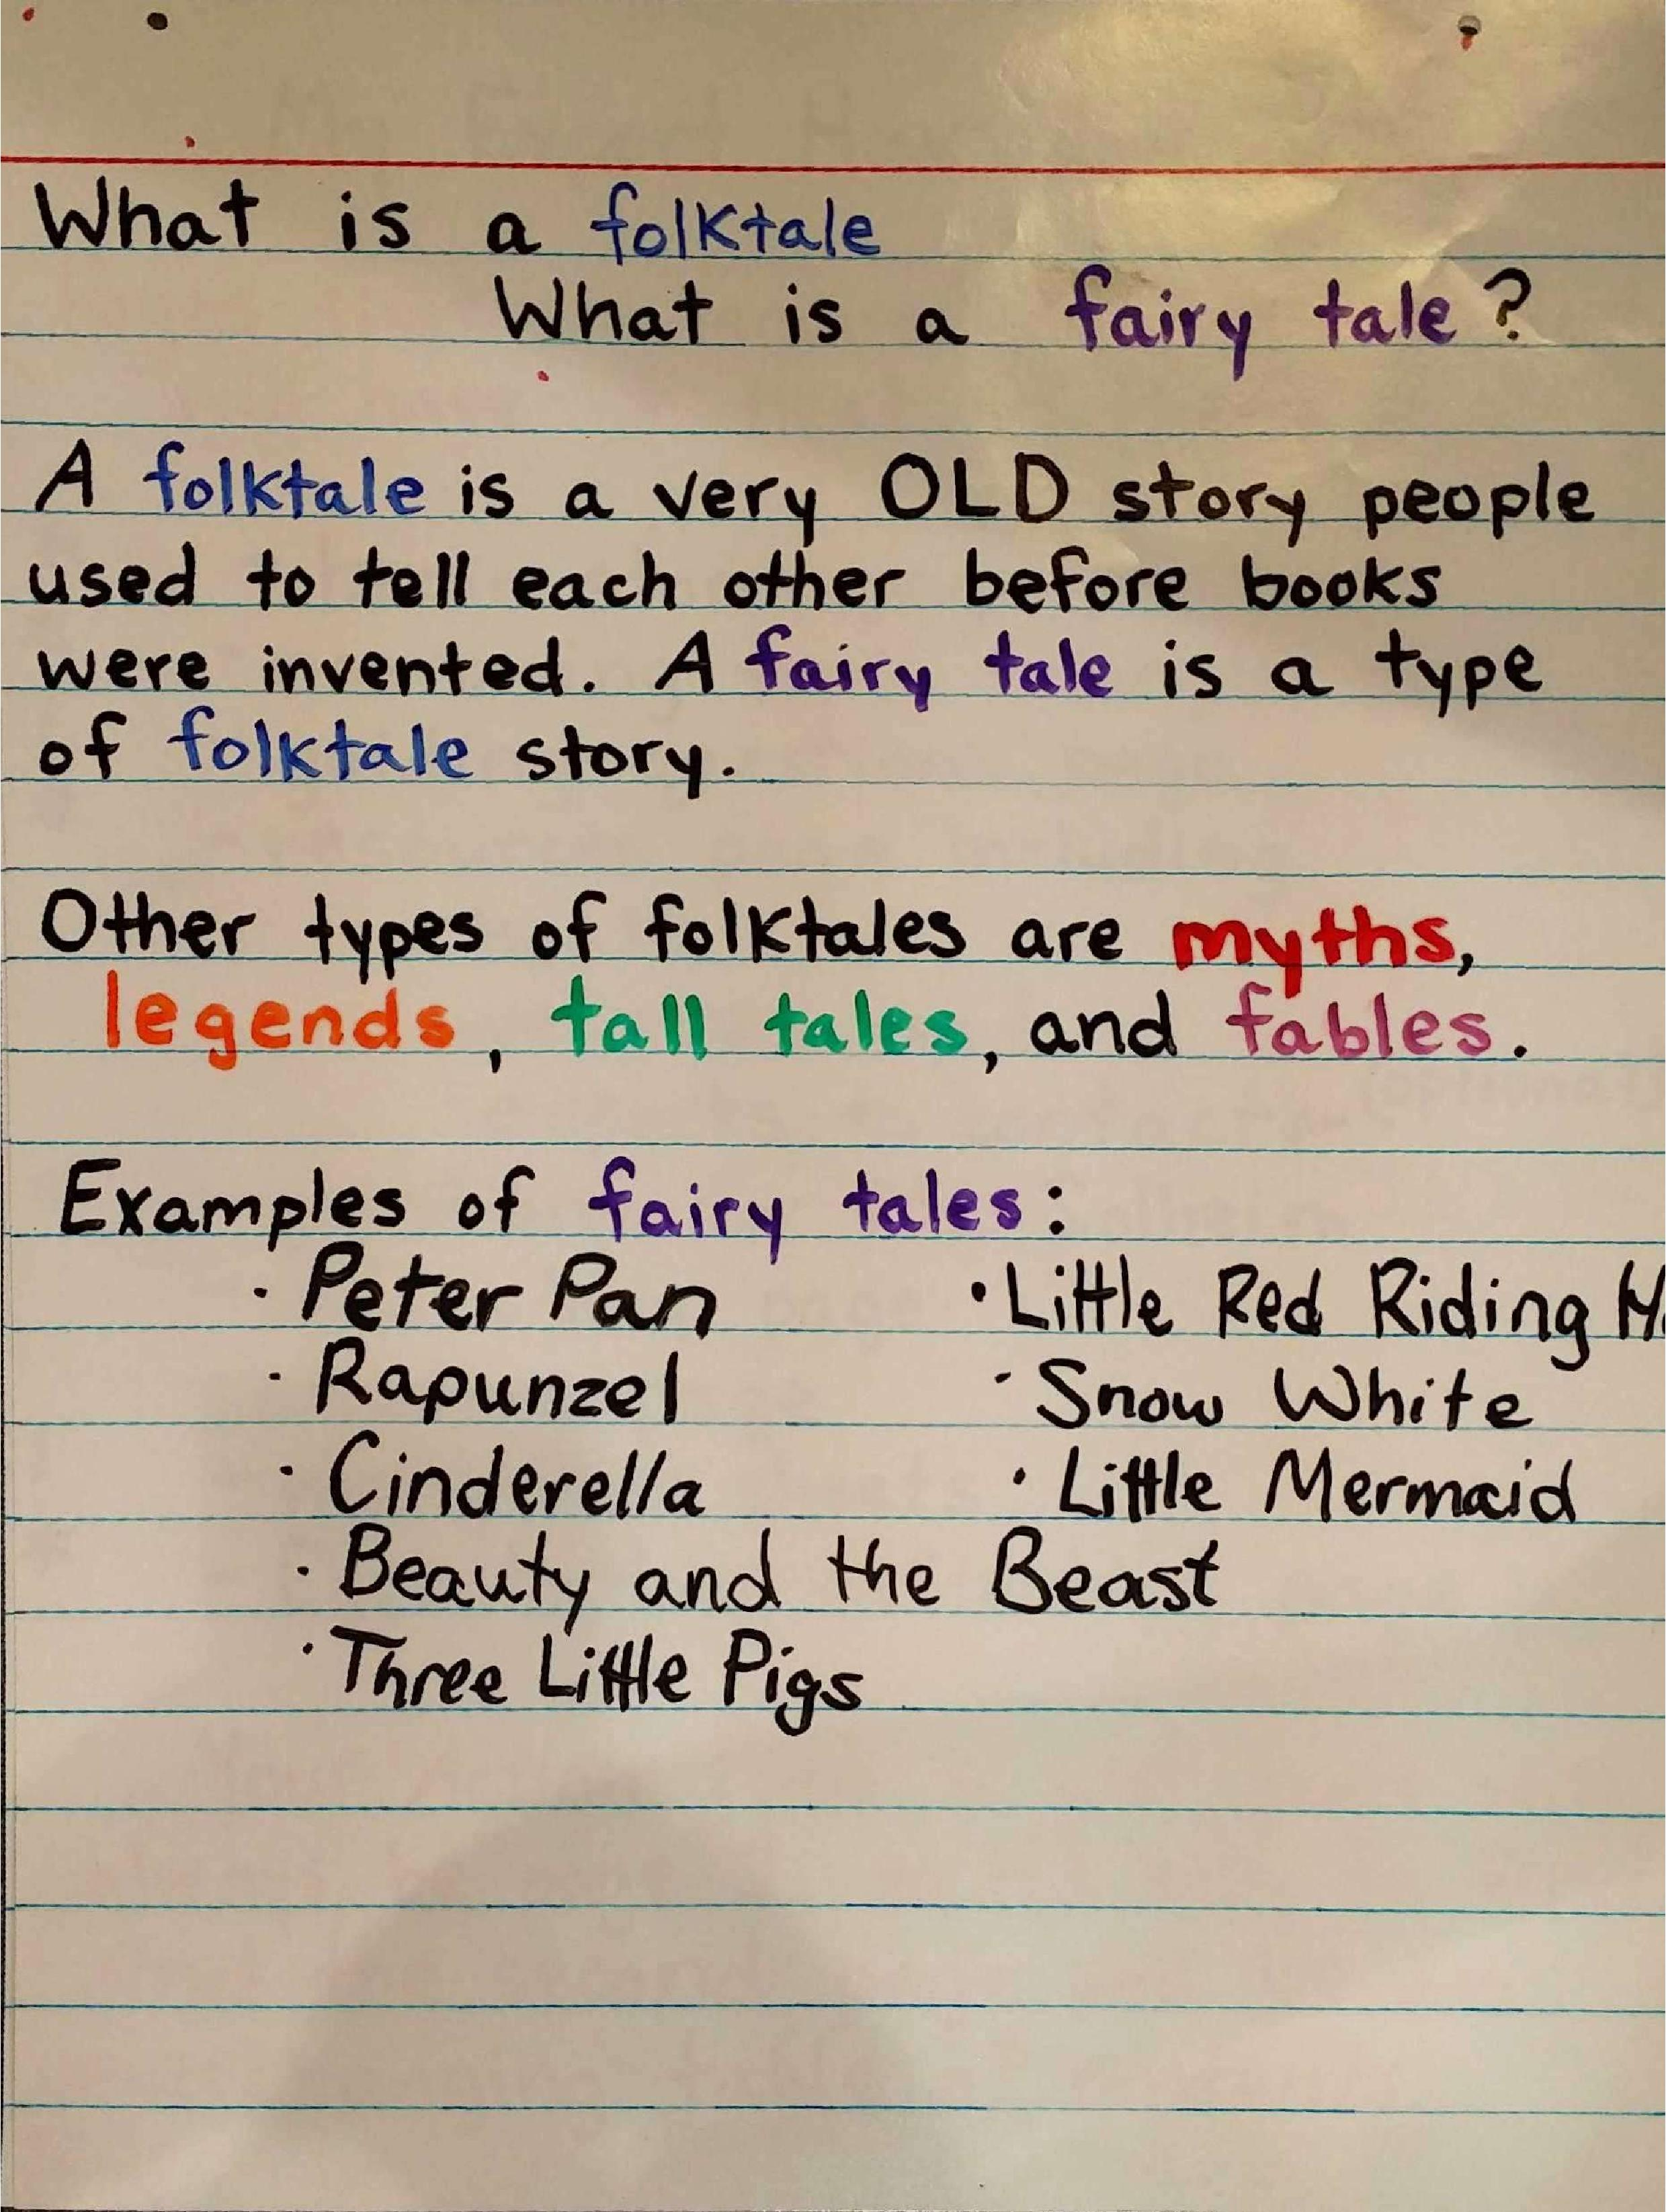 Process - Fun with Fractured Fairytales WebQuest - LibGuides